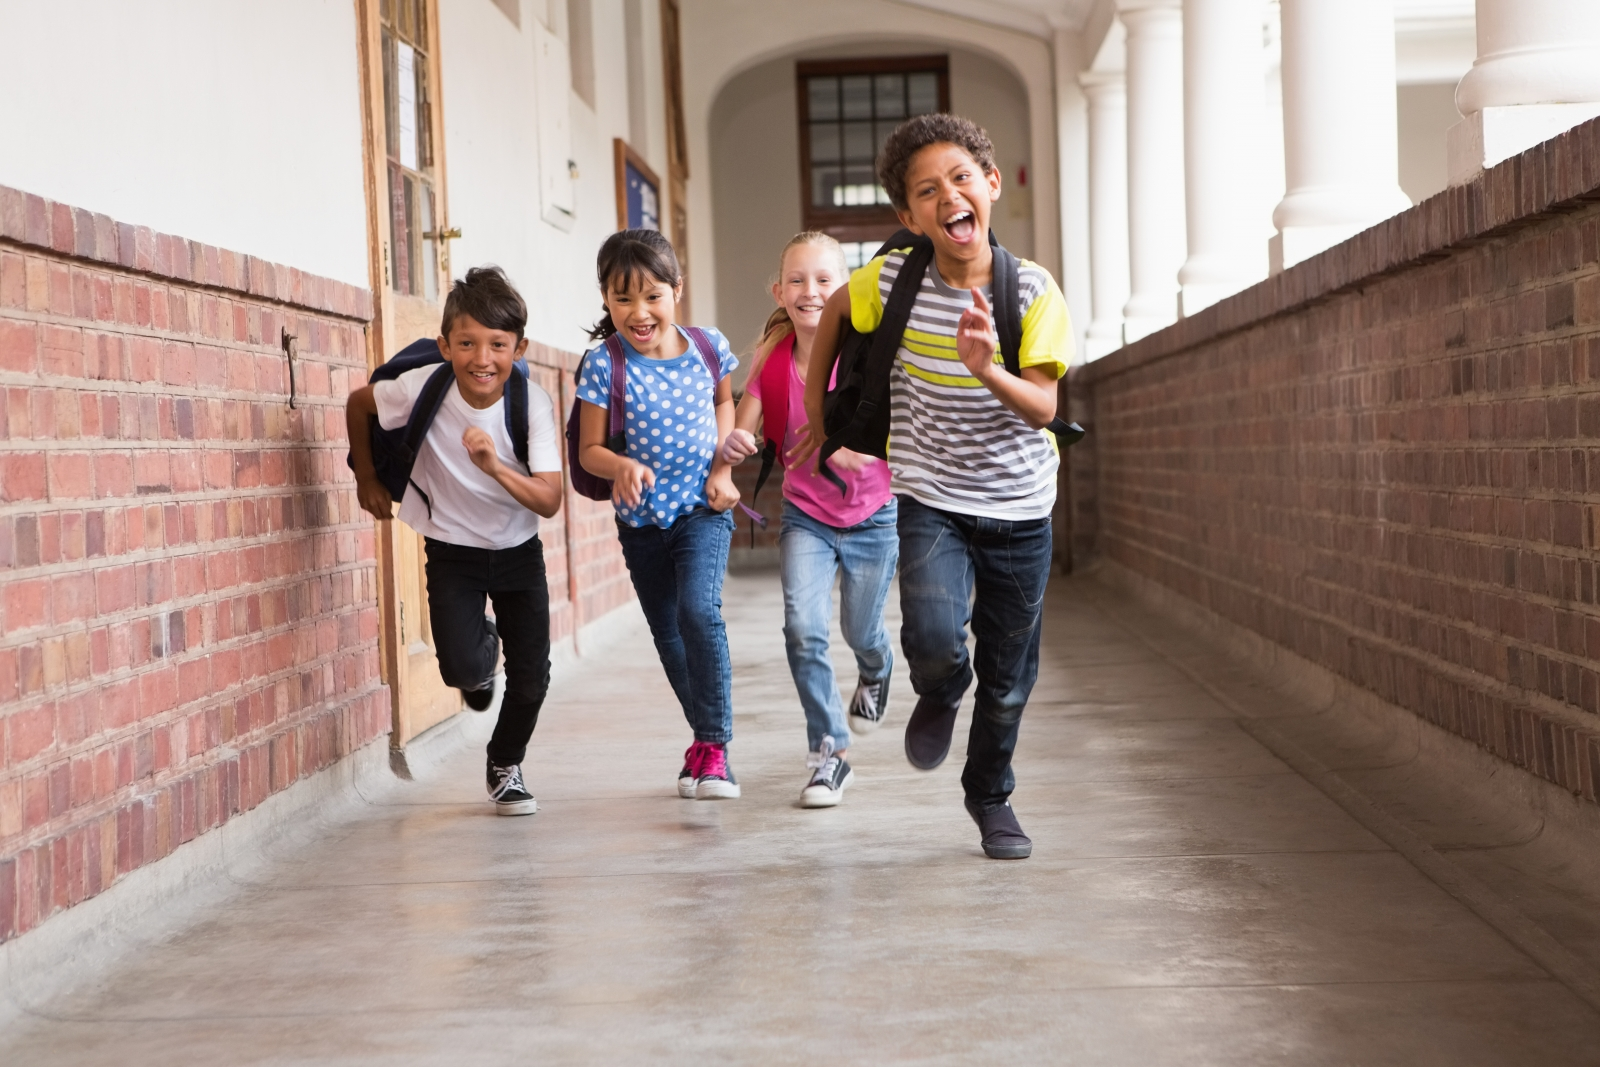 kids running towards camera down school hallway